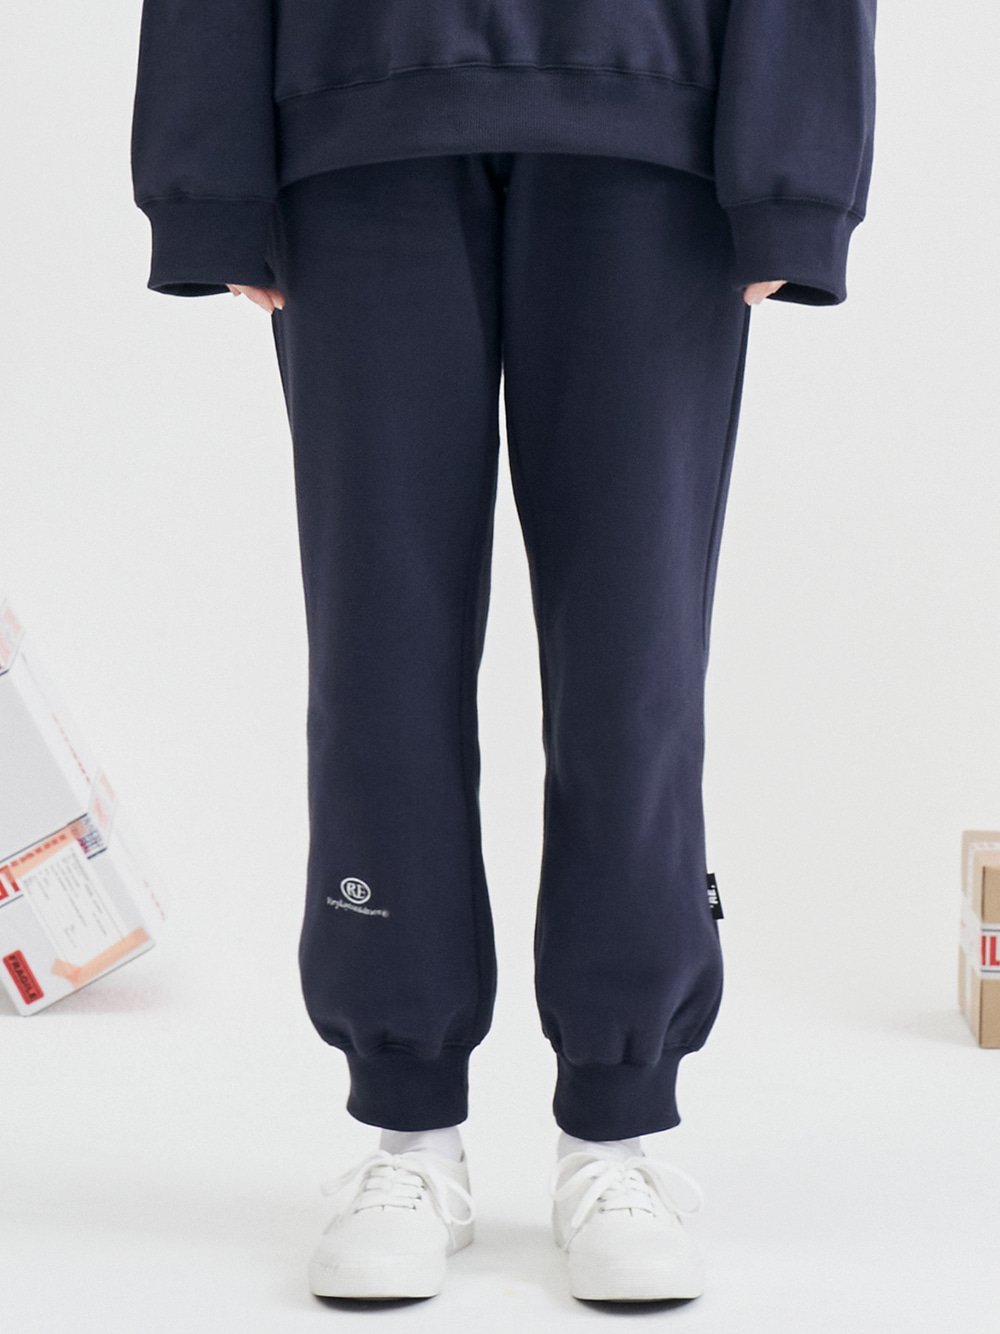 RE capsule logo jogger pants (navy) [9/25 delivery]